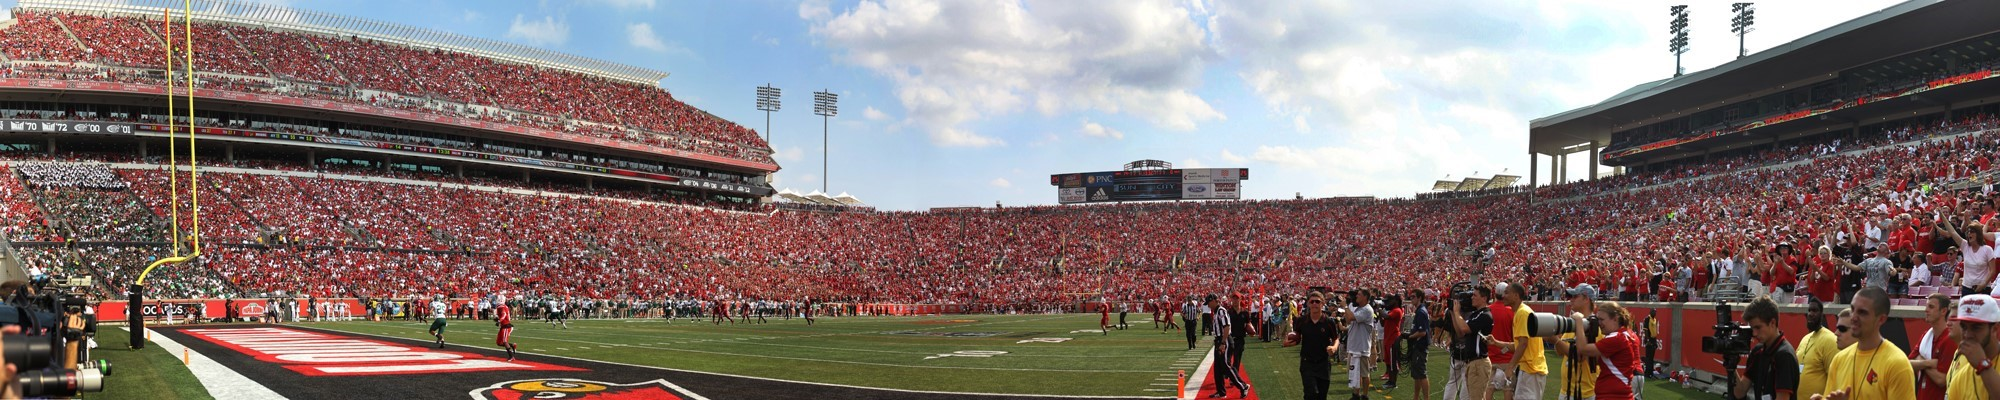 Cardinal Athletic Fund - FAQ's - University of Louisville